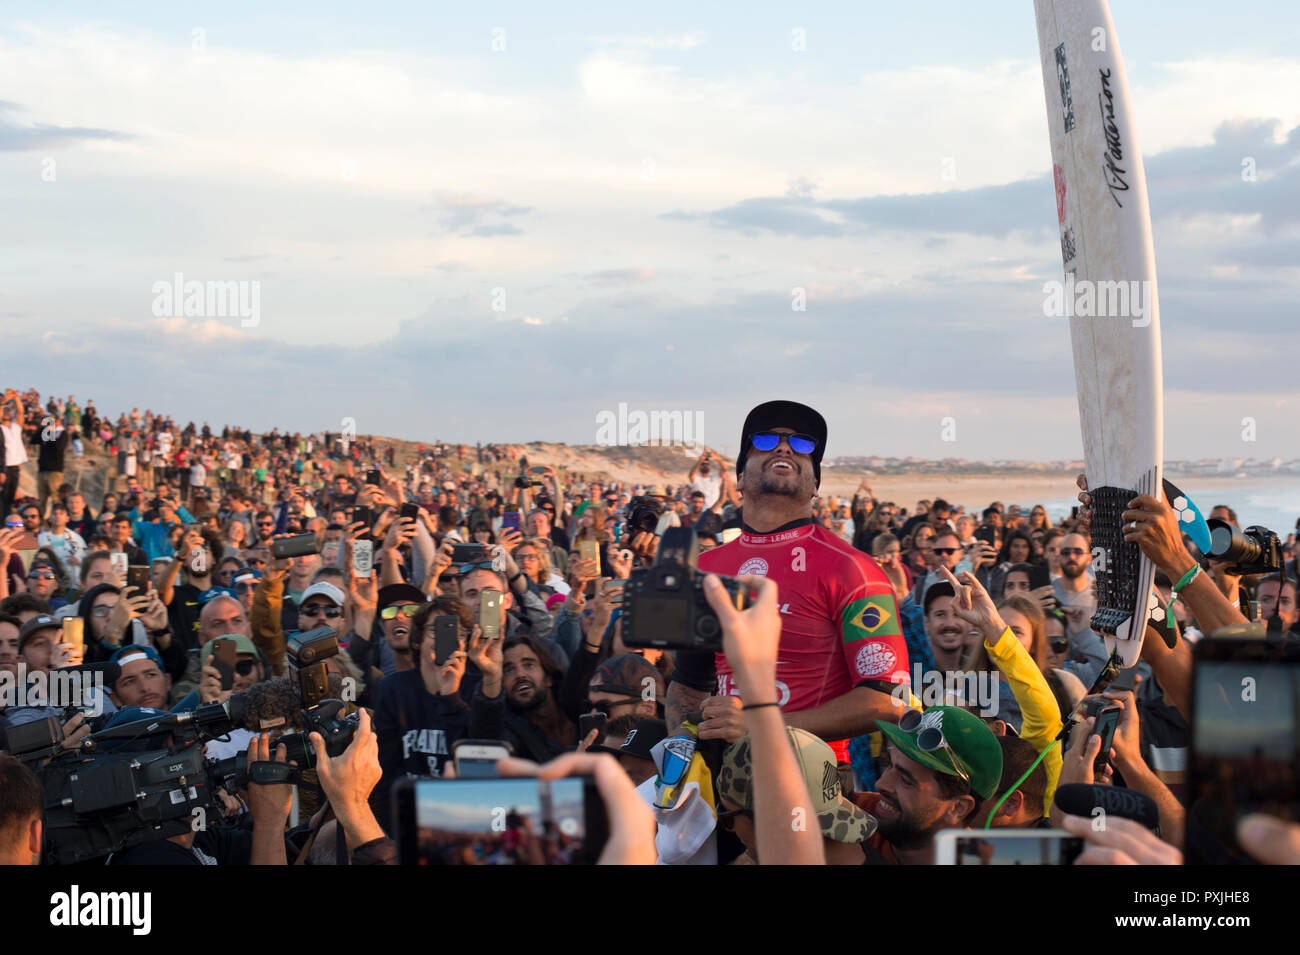 PENICHE, PORTUGAL - OCTOBER 20, 2018: Italo Ferreira celebrating victory during the World Surf League's 2018 MEO Rip Curl Pro Portugal competition - Stock Image